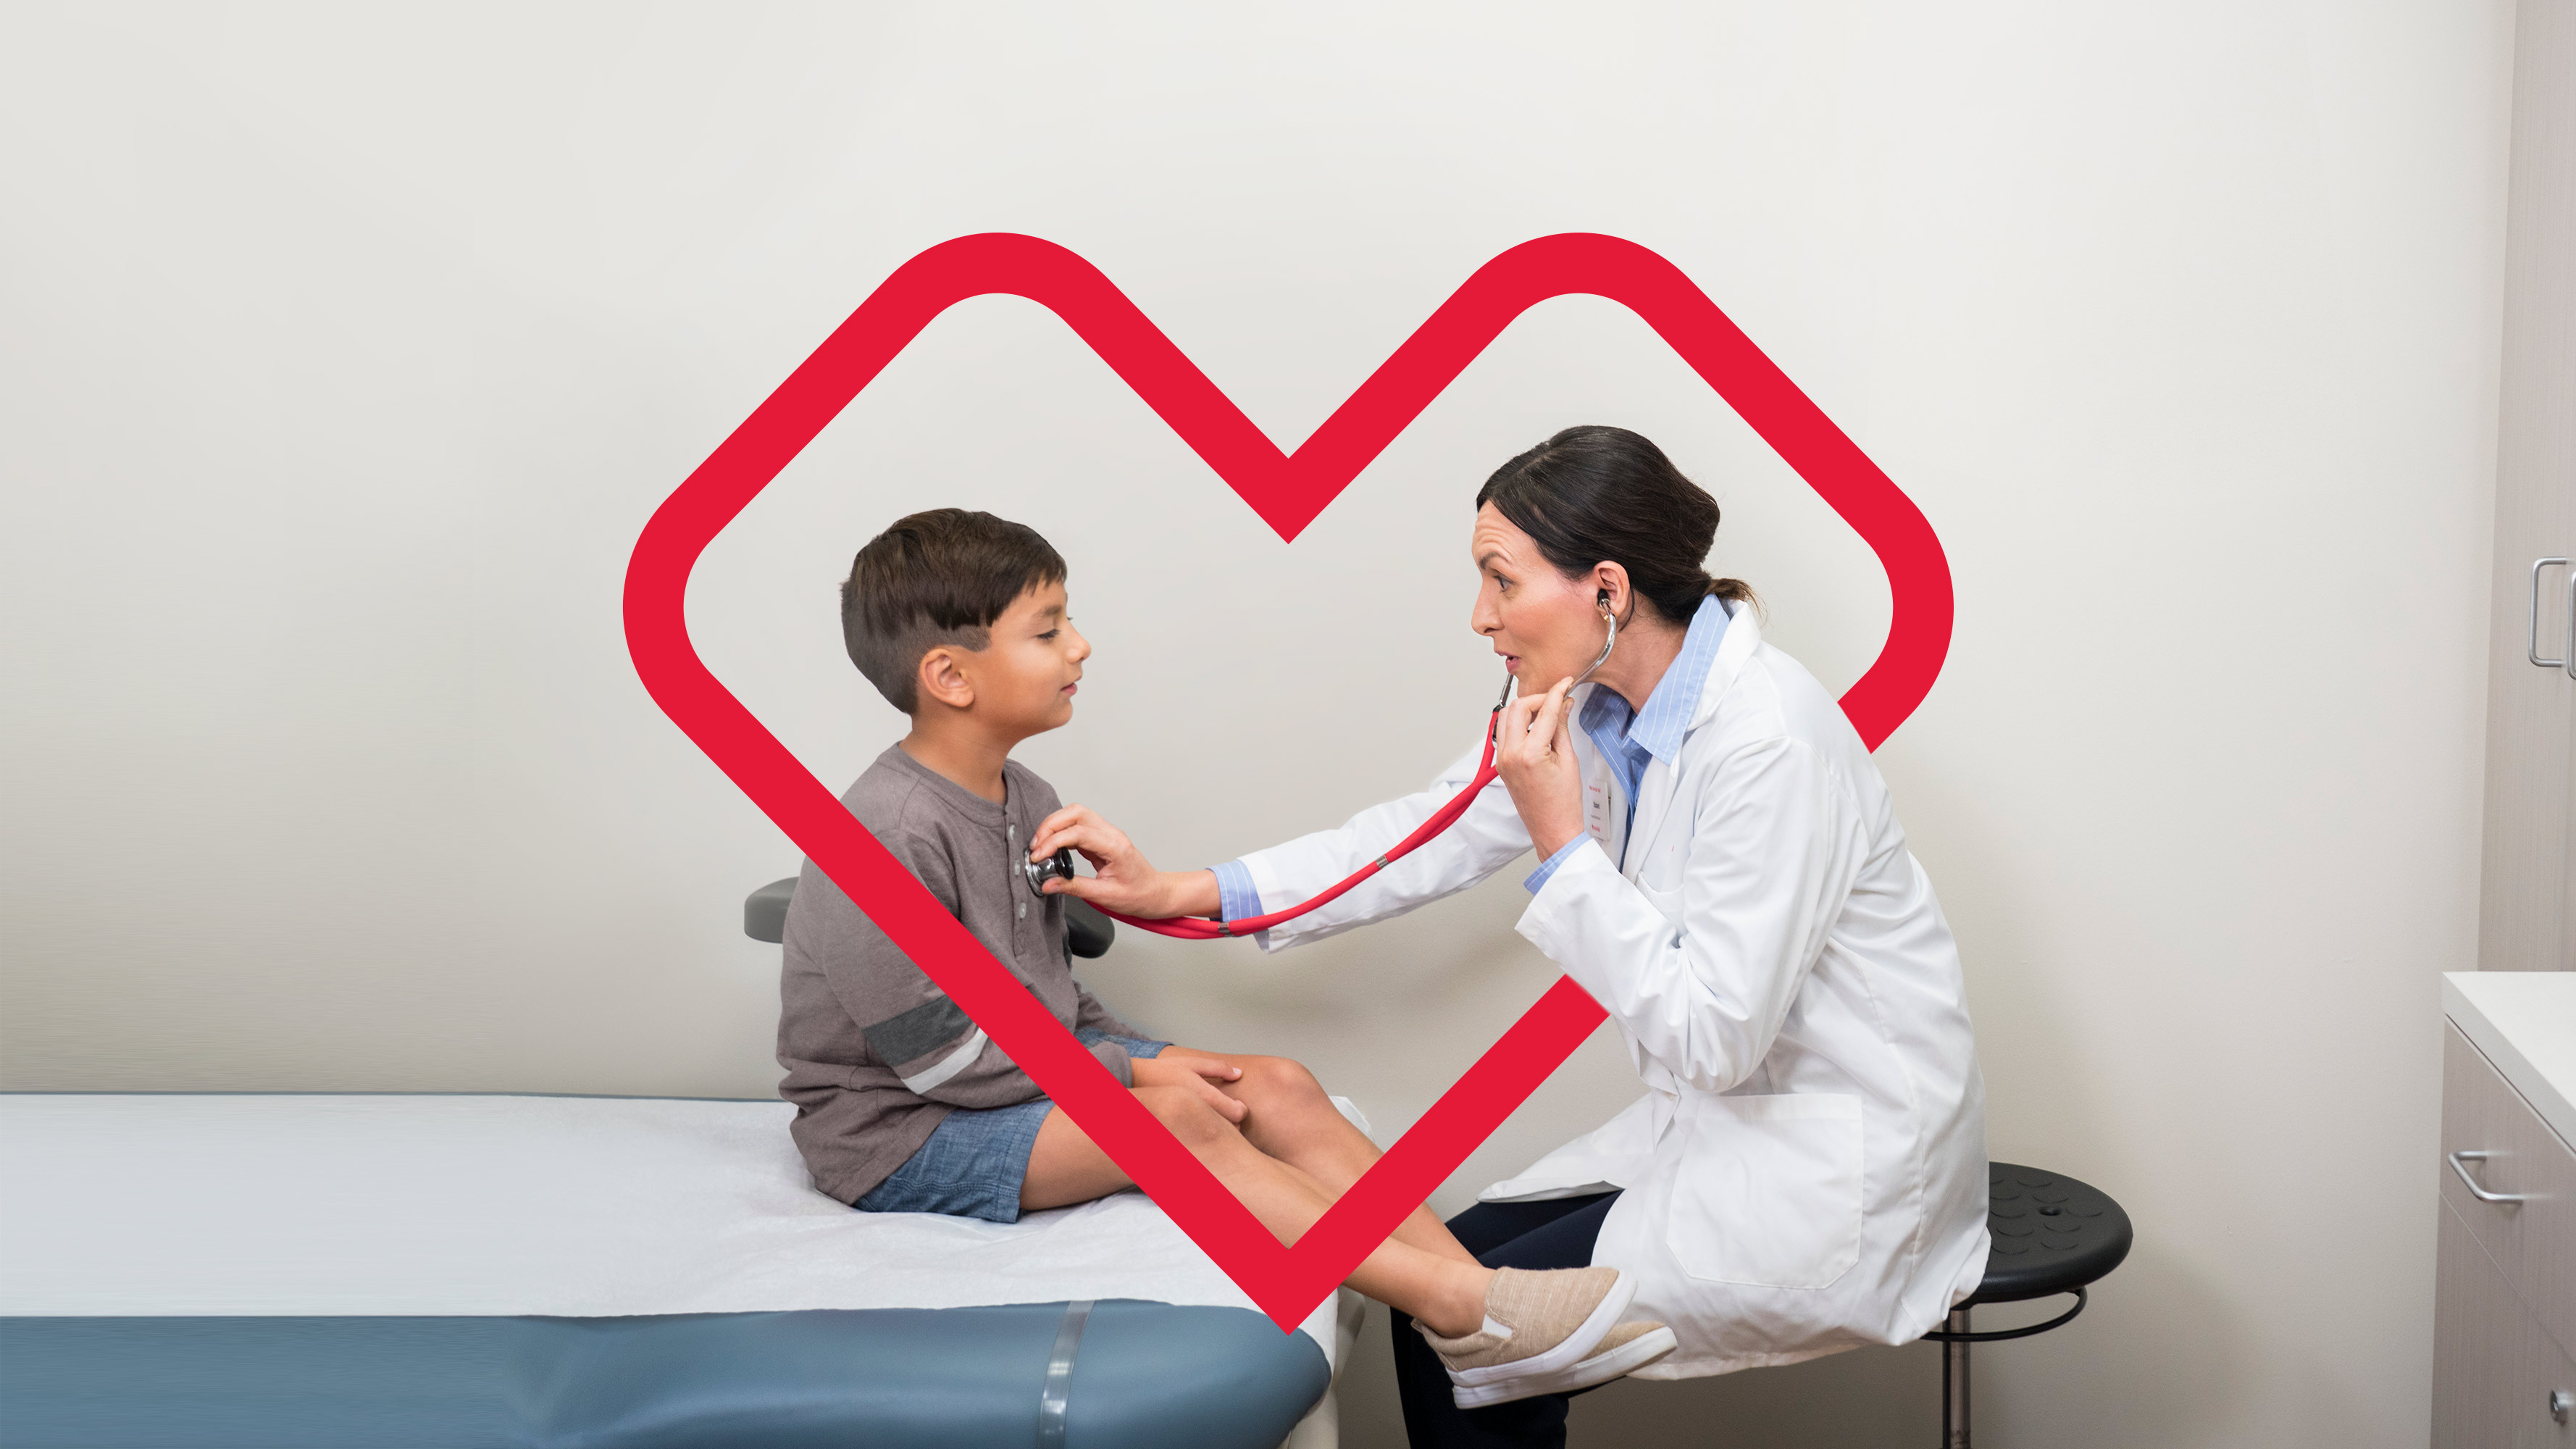 A MinuteClinic practitioner examines a young boy using a stethoscope inside an examination room; a red CVS Health heart outline surrounds them.